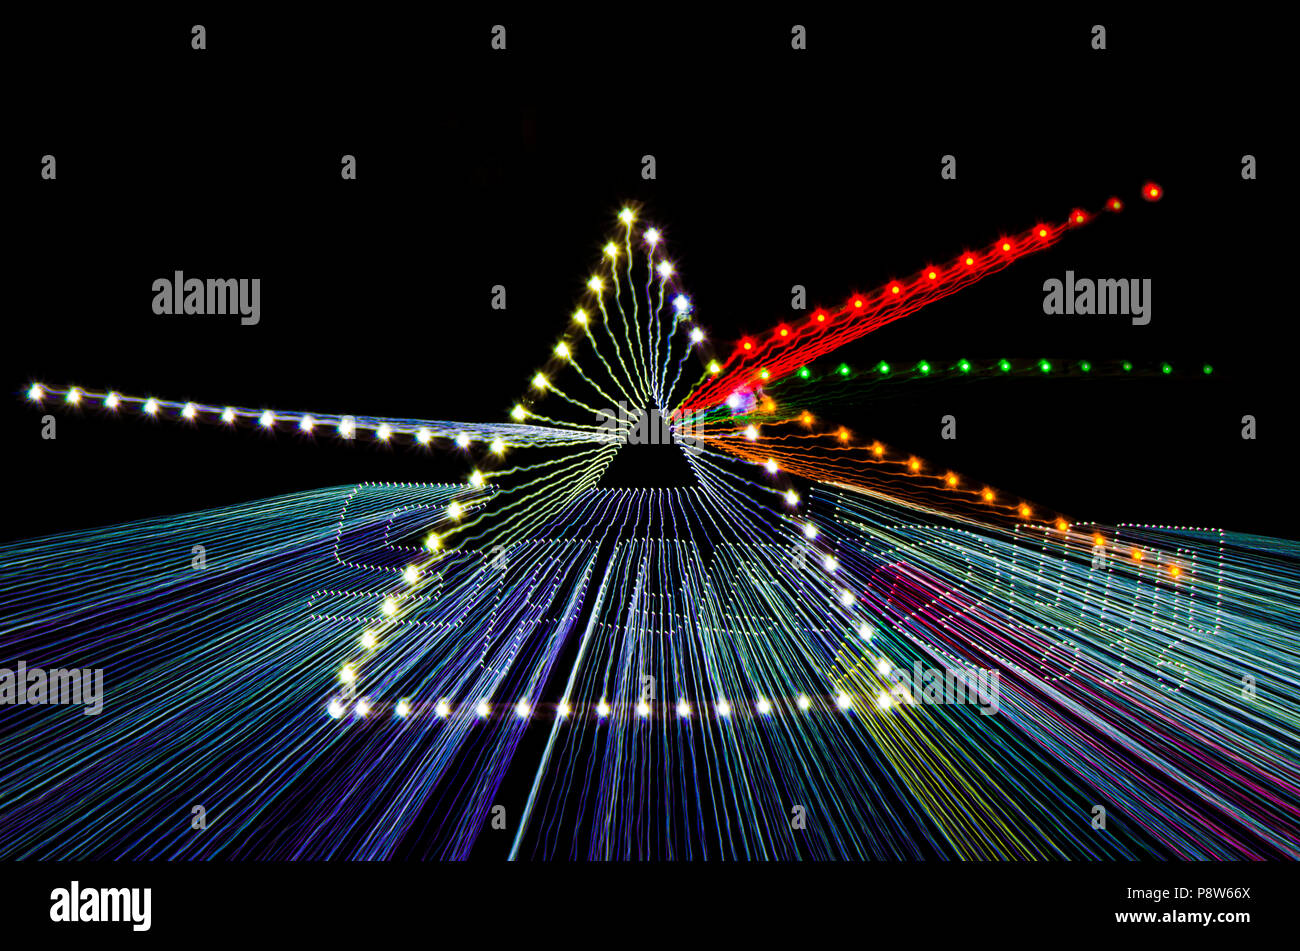 Zoom burst, illusive image of the concept of white light dispersion through a prism showcased using different colour LED bulbs over black background. - Stock Image